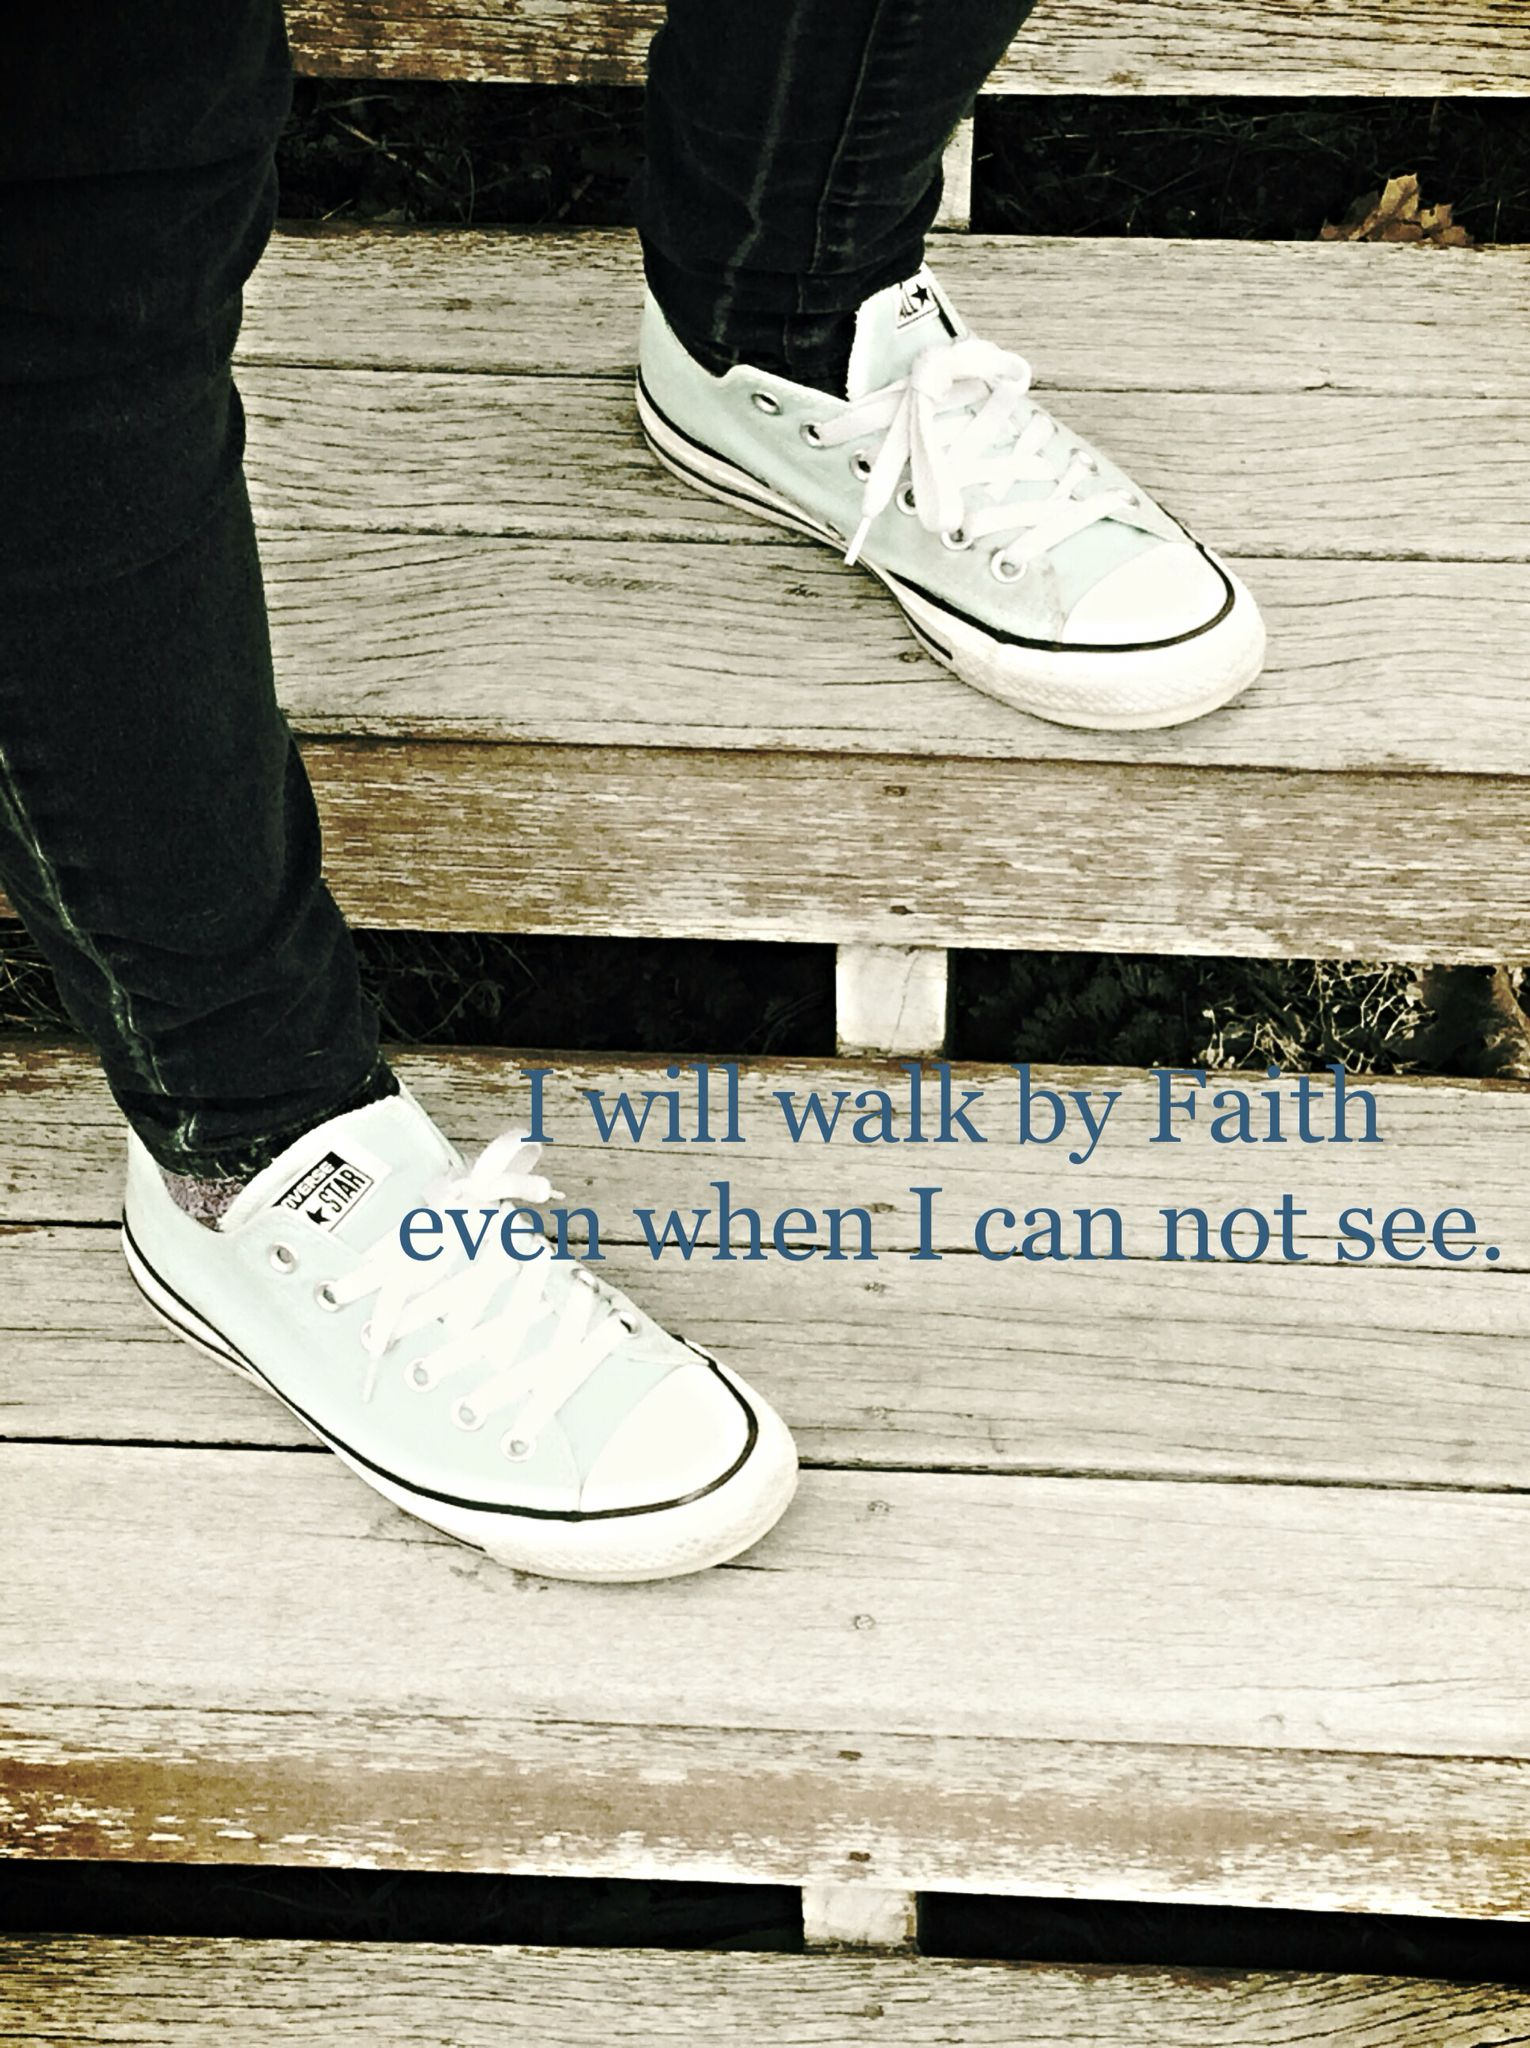 Love this verse! Sperry sneaker, Walk by faith, Walking by